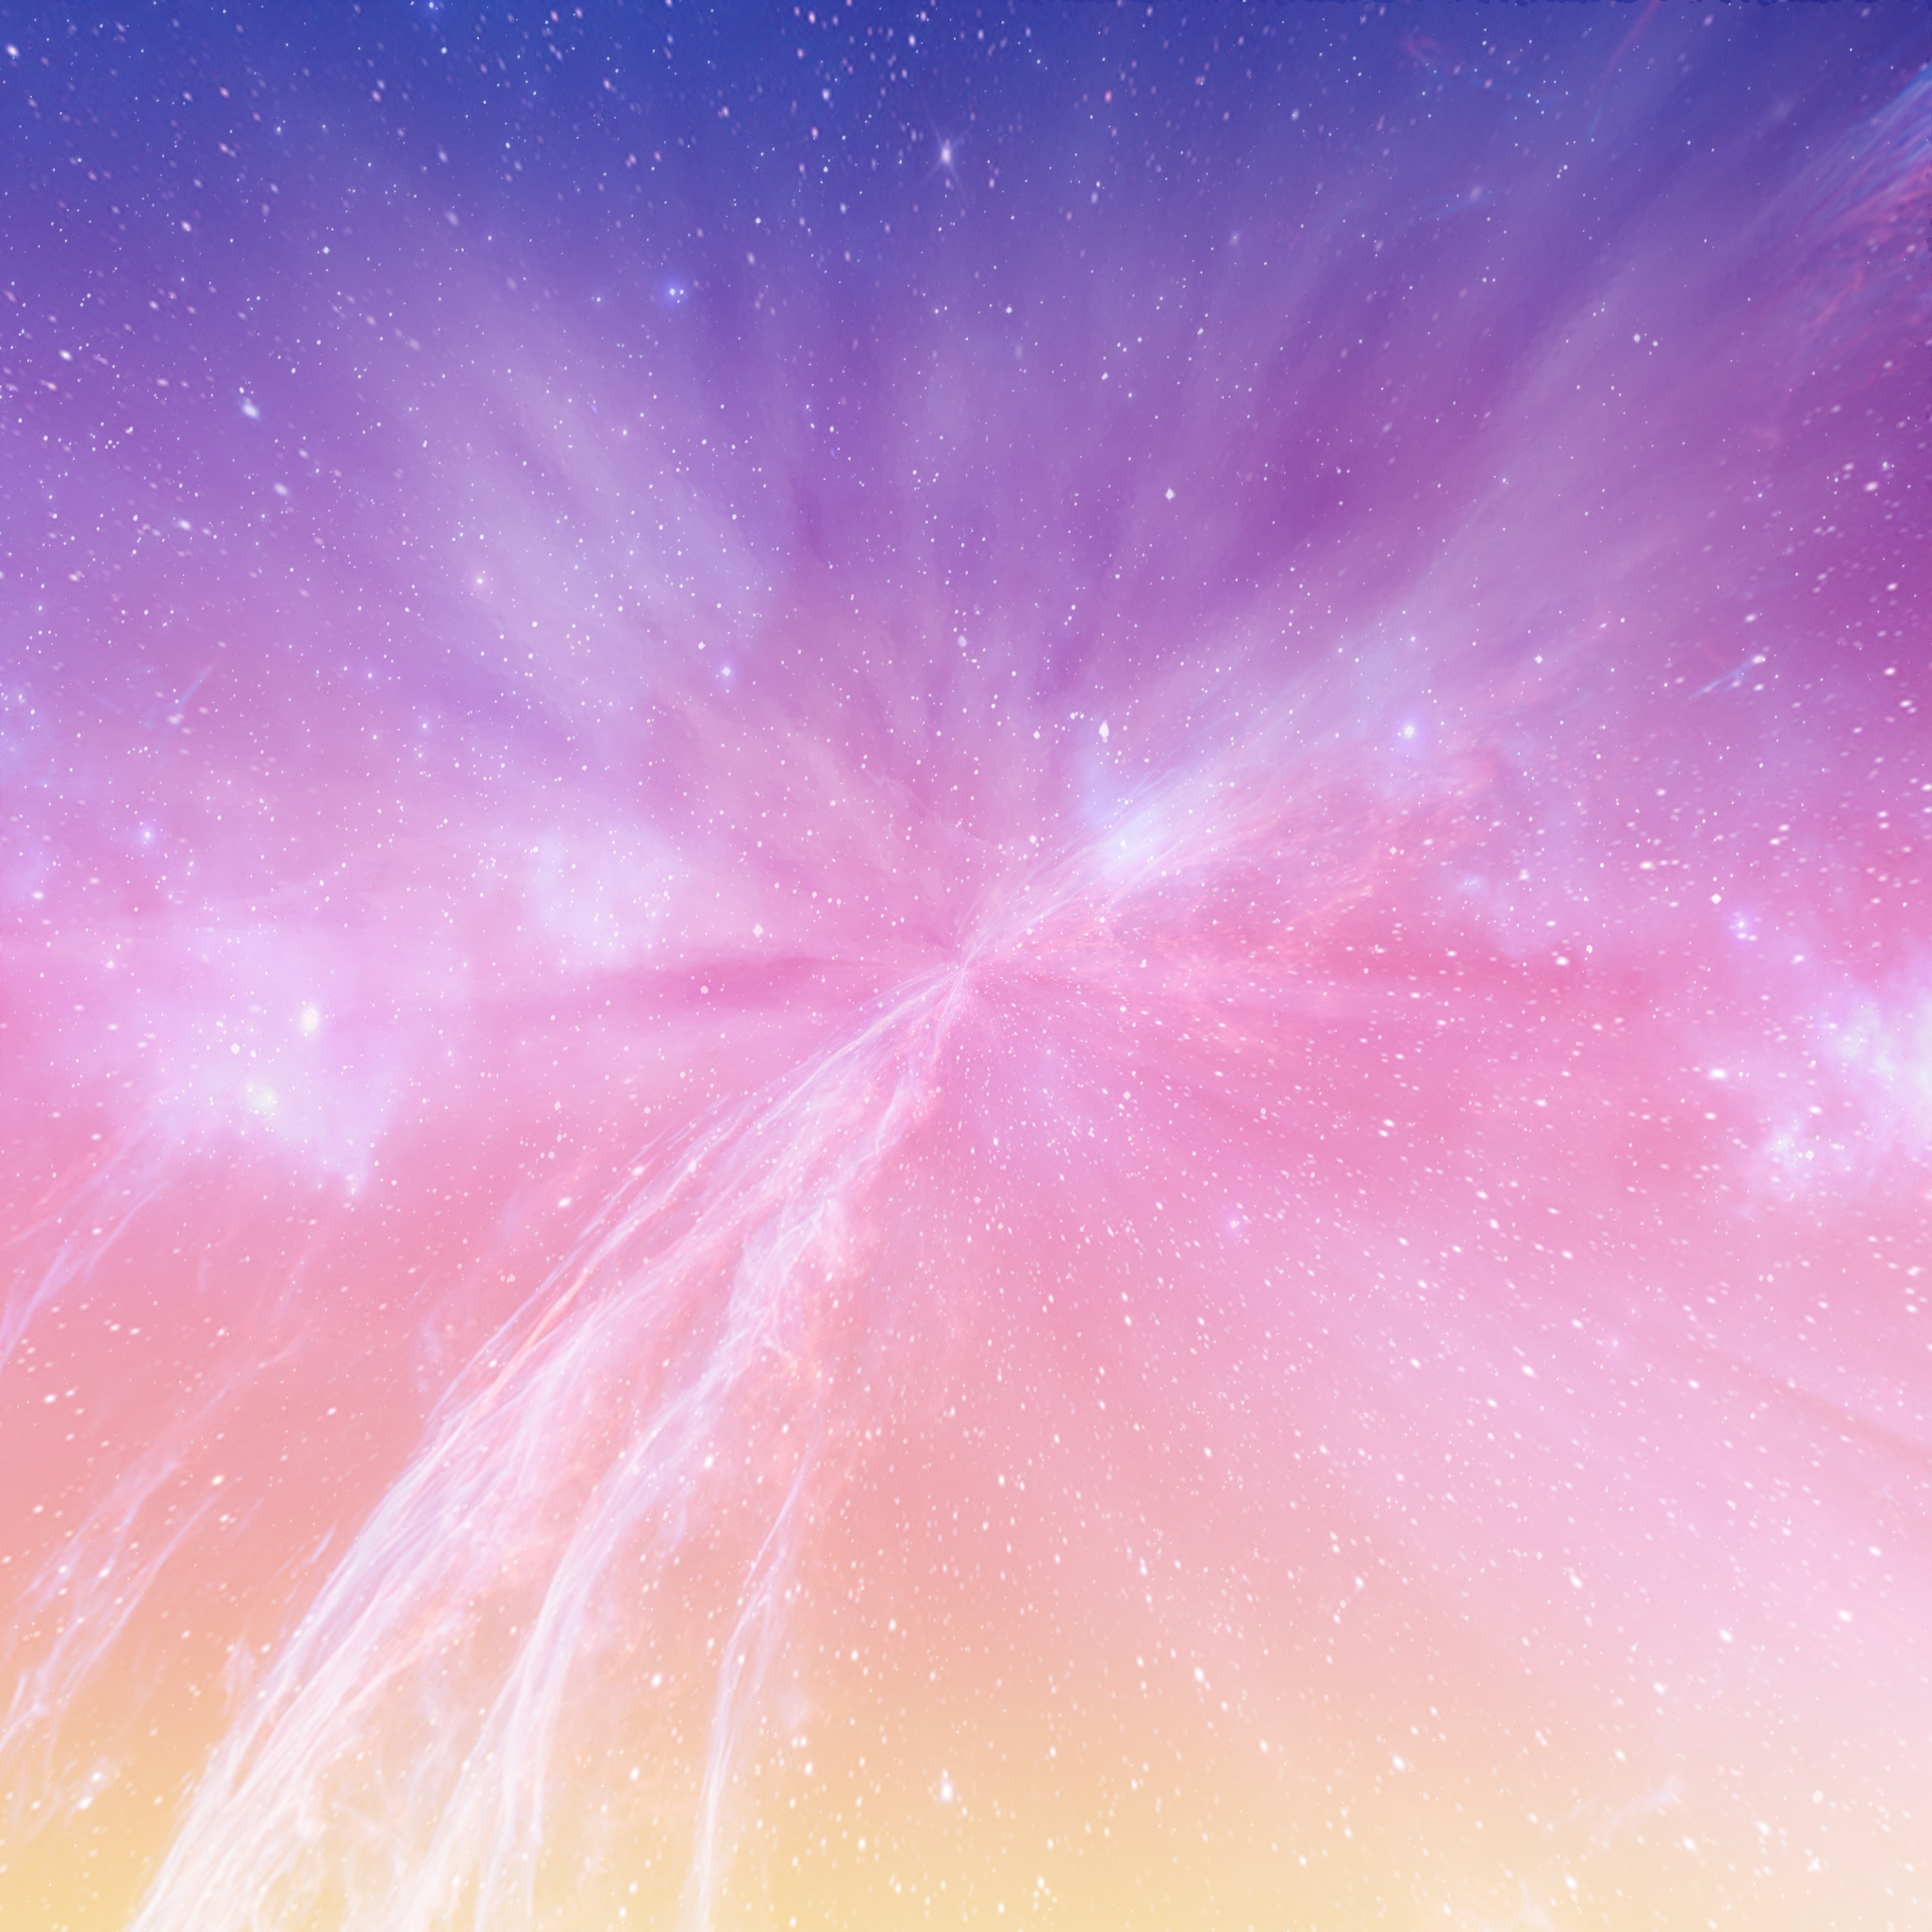 9 Wildly Colored Galactic Hd Wallpapers At 2048 2048 Resolution Osxdaily